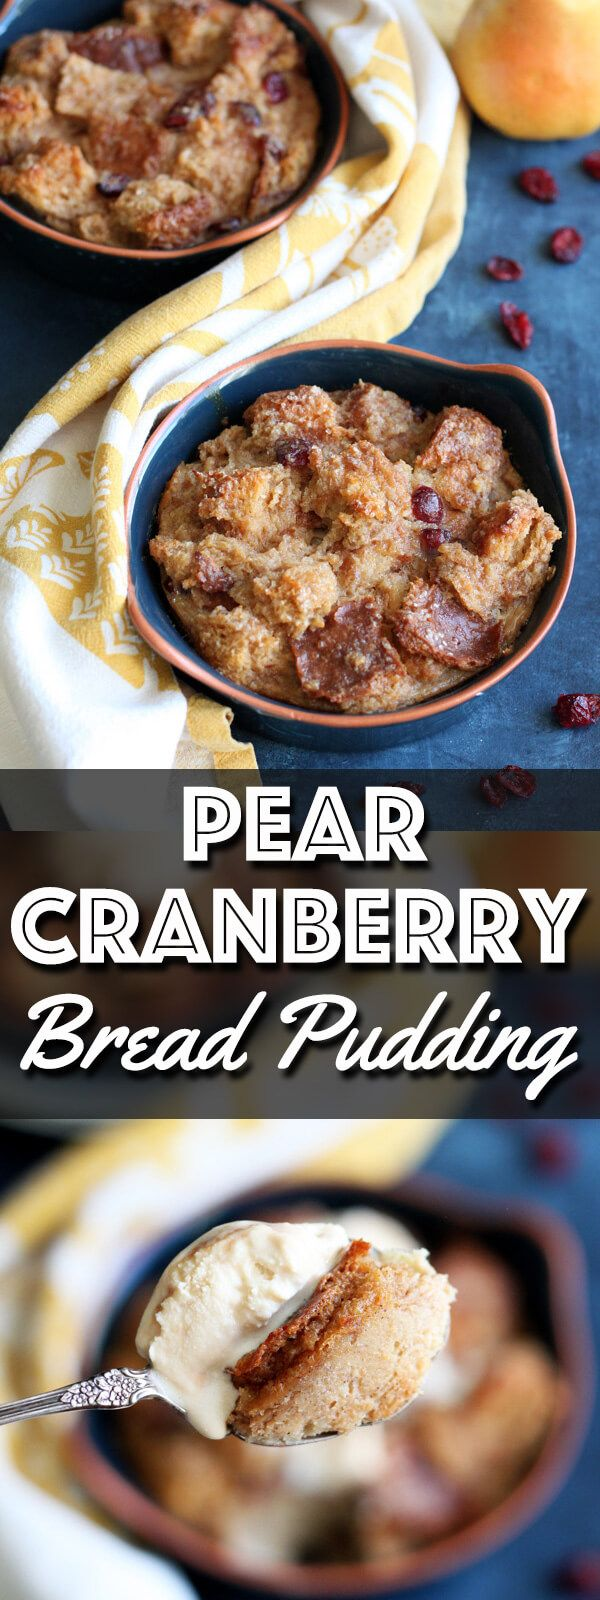 This Pear Cranberry Bread Pudding is a simple yet decadent dessert, baked up nicely in individual ramekins for easy sharing.  | wildwildwhisk.com